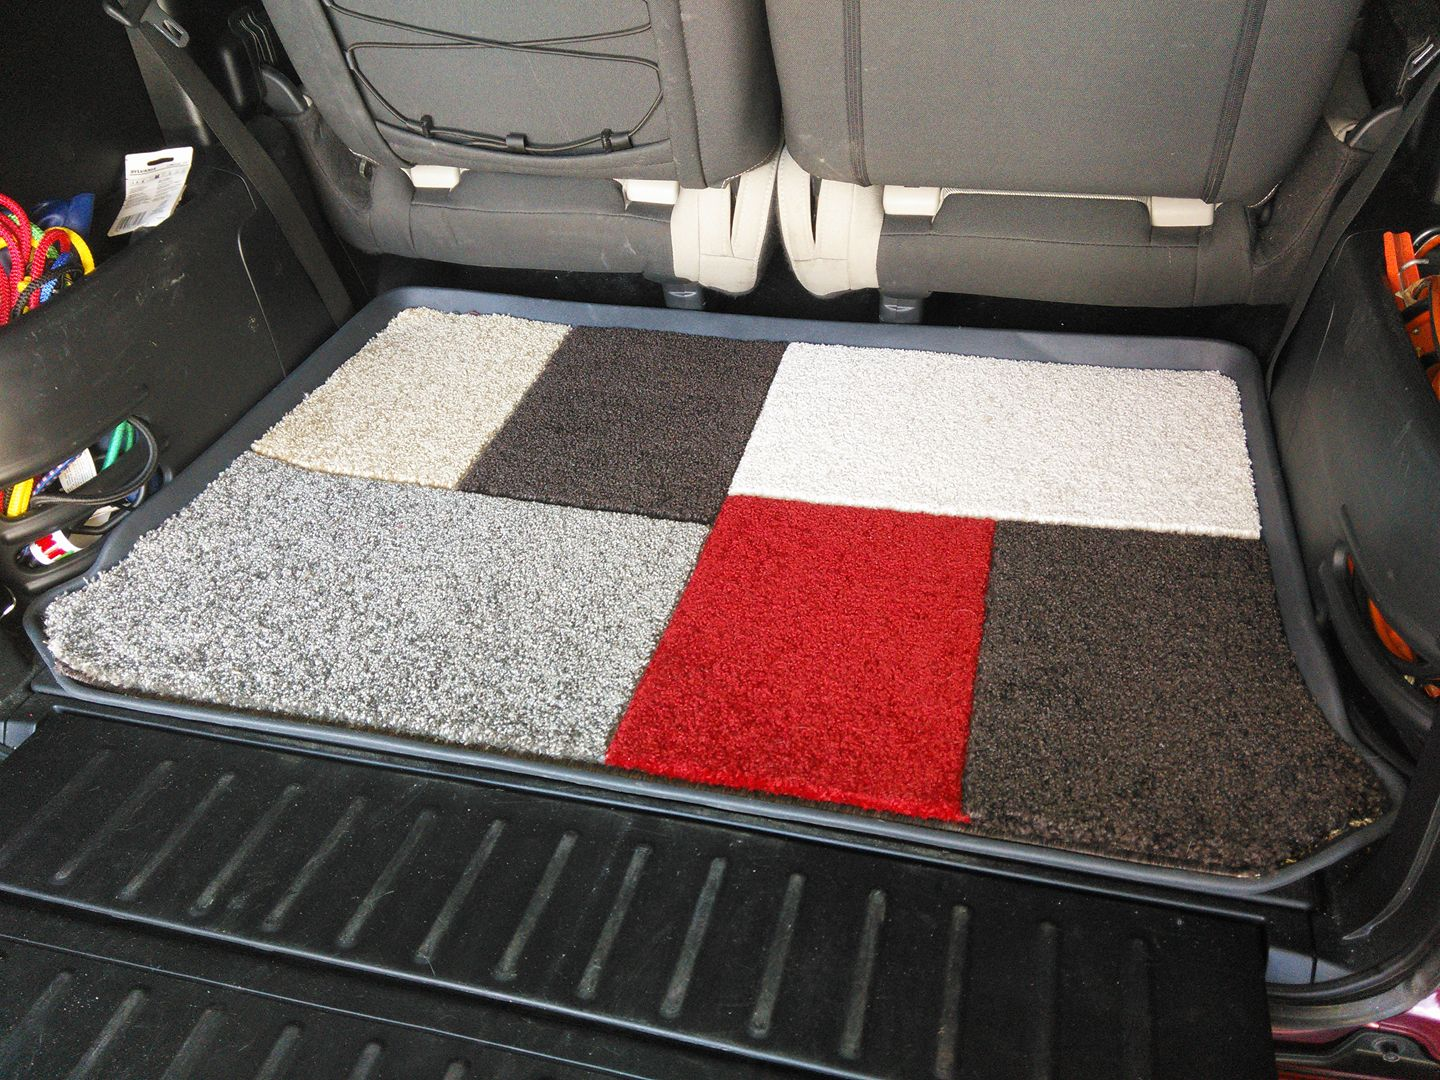 honda element cool mod diy rear interior carpet over rubber cargo mat floor red white grey brown